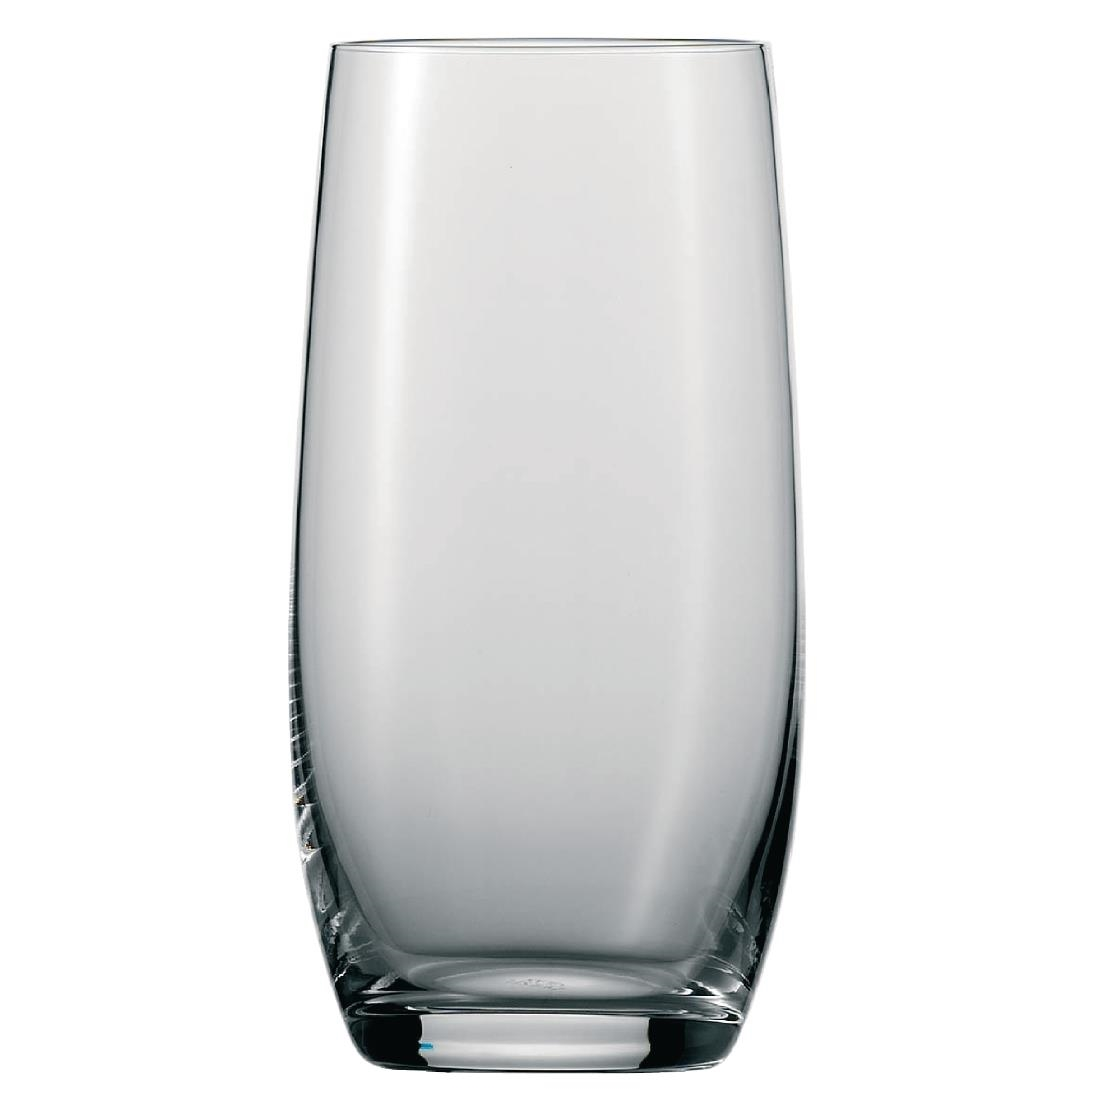 Schott Zwiesel Banquet Crystal Hi Ball Glasses 430ml (Pack of 6) Pack of 6 Image